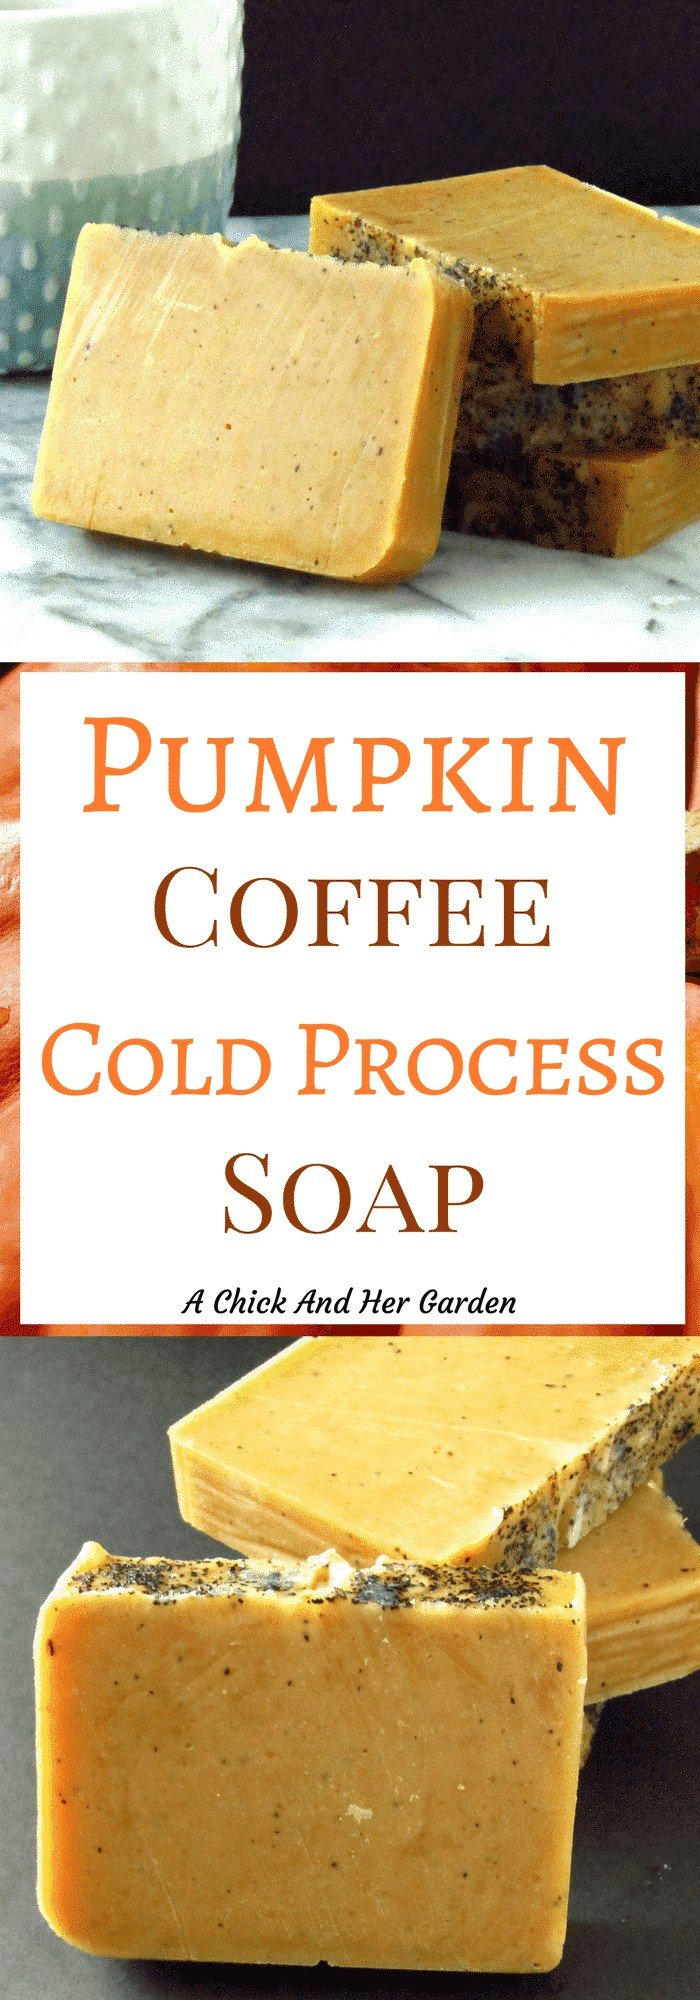 Pumpkin coffee soap has two of my favorite things! Pumpkin and coffee! While it's a great scent for the Fall, this soap has plenty of benefits for use year round!